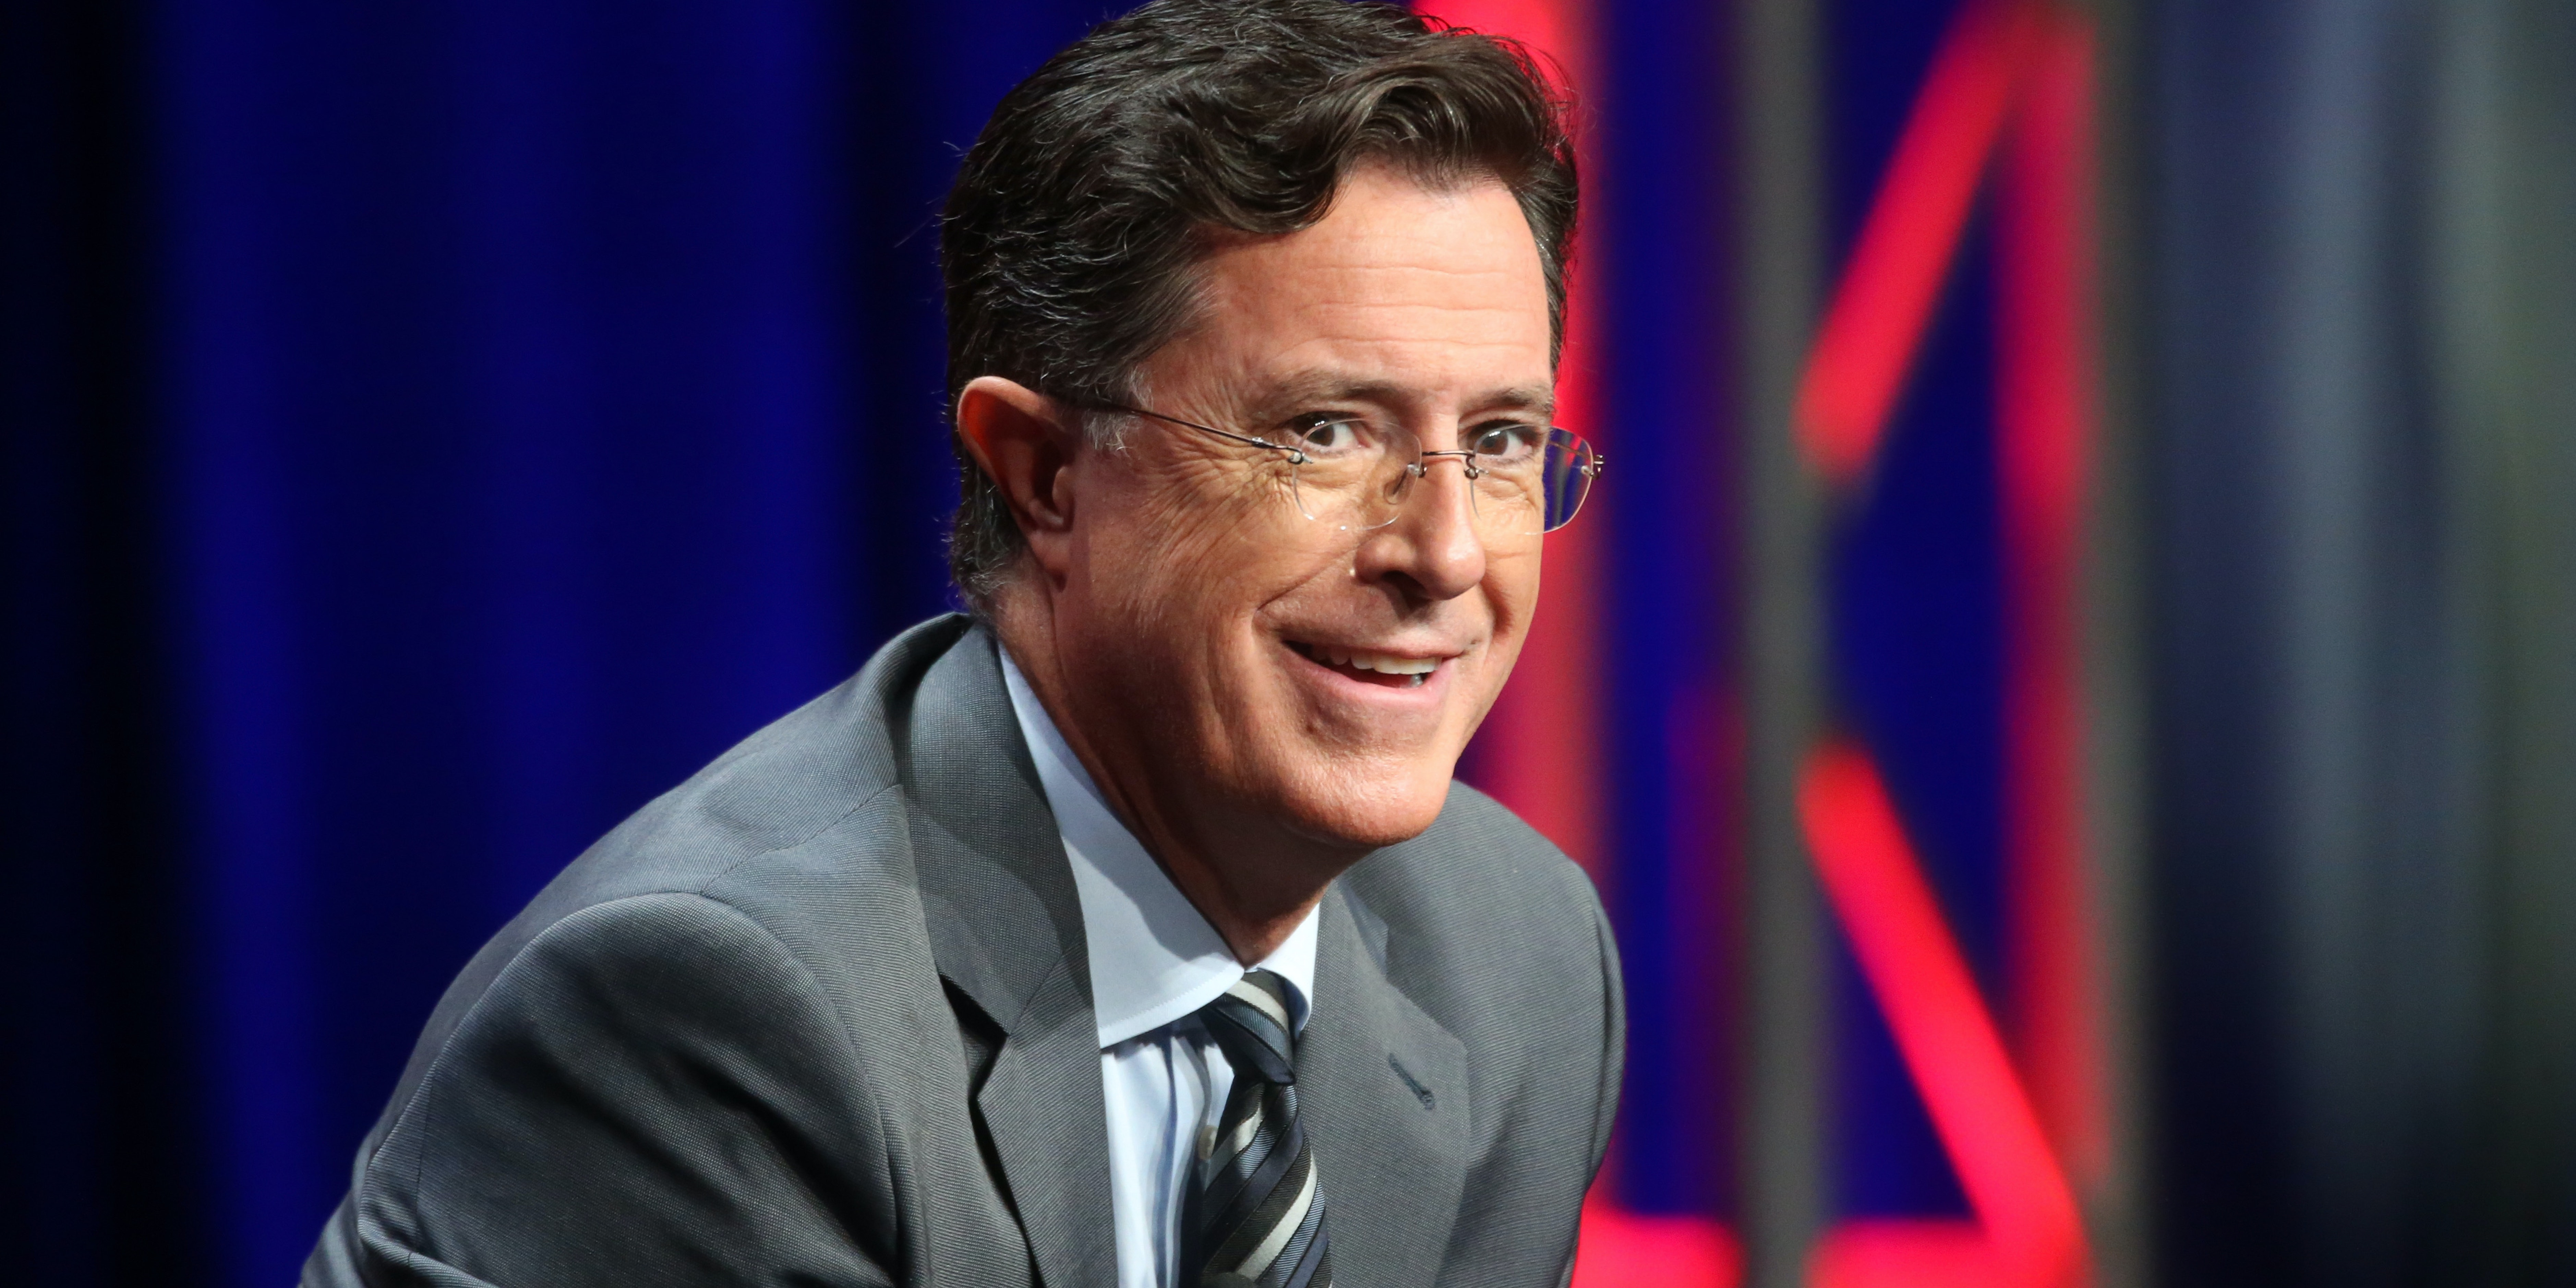 Stephen Colbert Predicts the Plot of 'The Force Awakens' From the Trailer